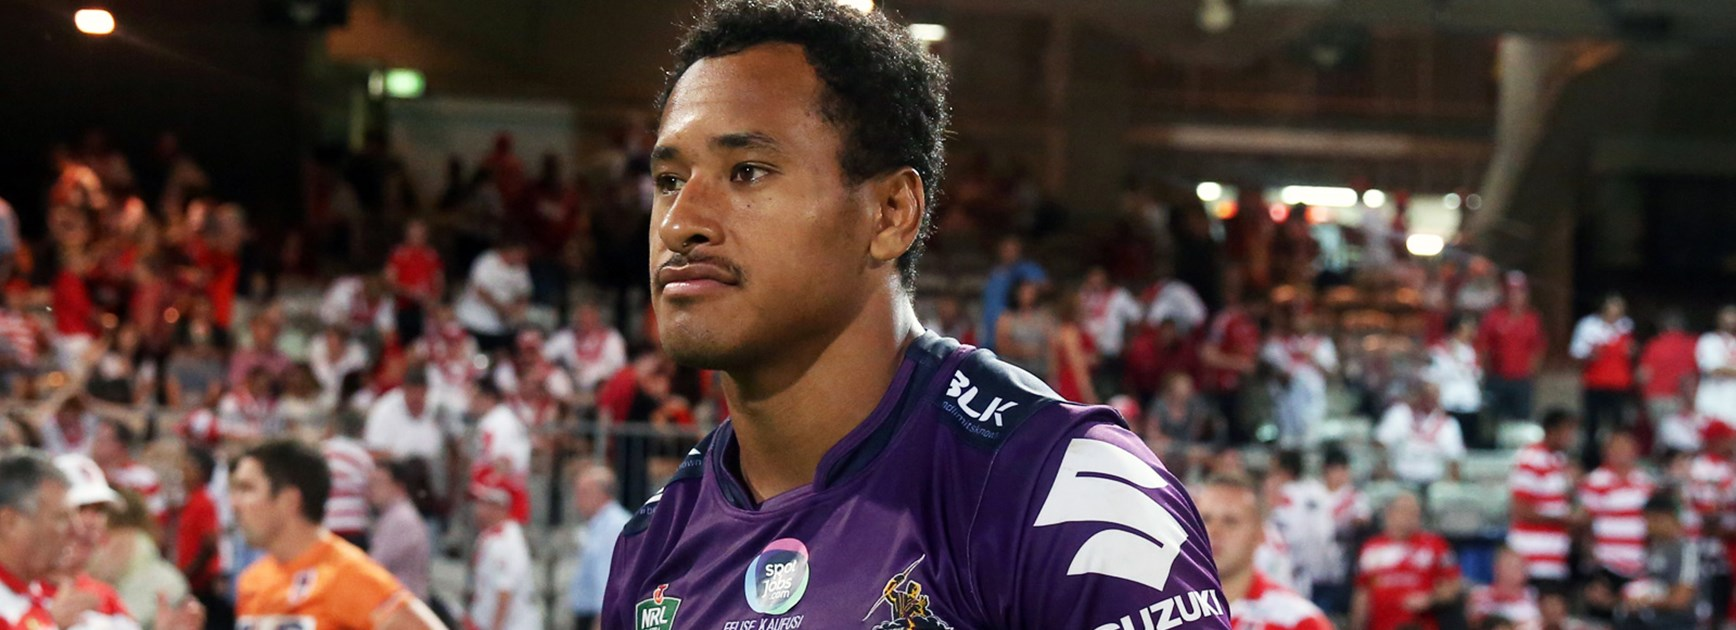 Felise Kaufusi has re-signed with the Storm through to the end of the 2017 season.